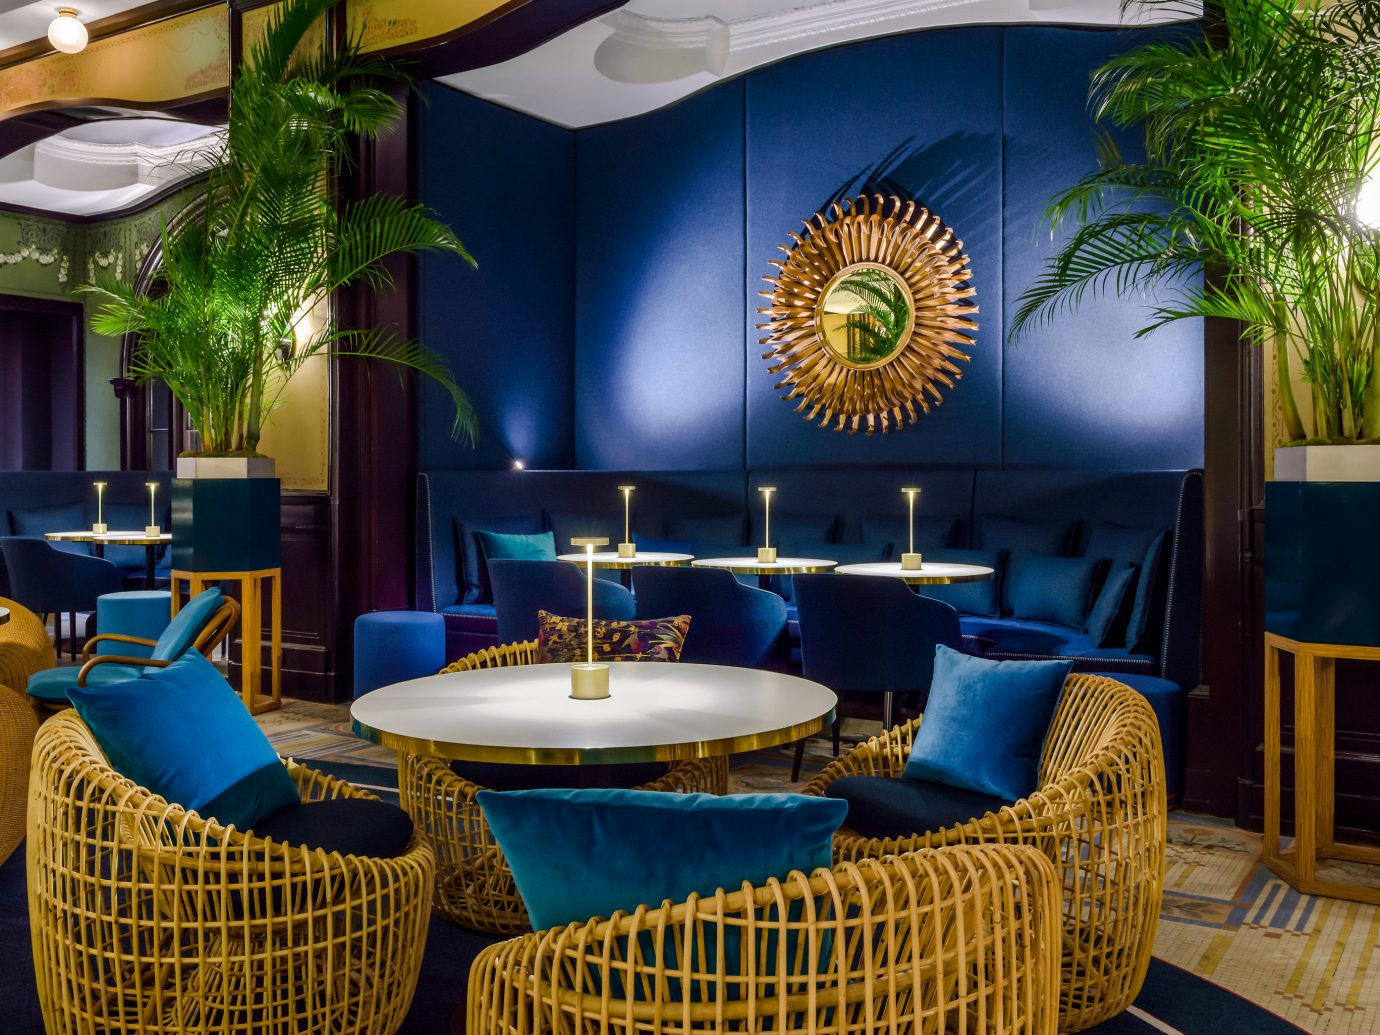 Boutique Hotels Hotels chair restaurant interior design yellow Dining table real estate furniture colorful